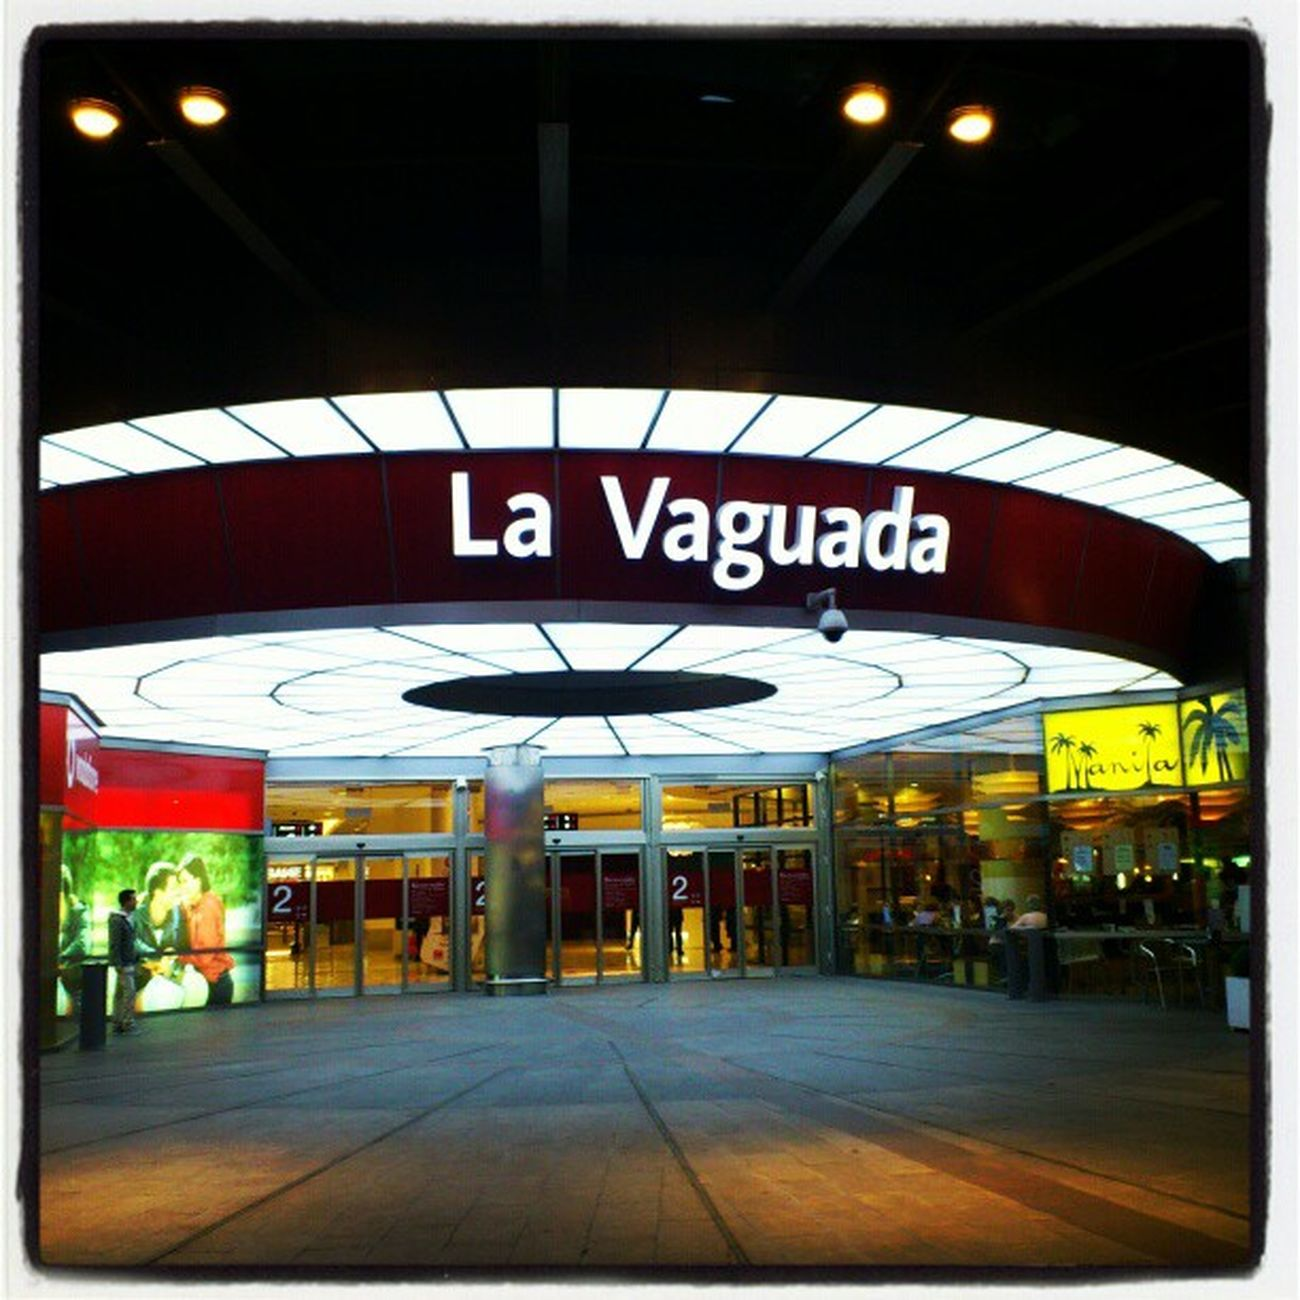 En la Vaguada The Mall Vaguada Madrid